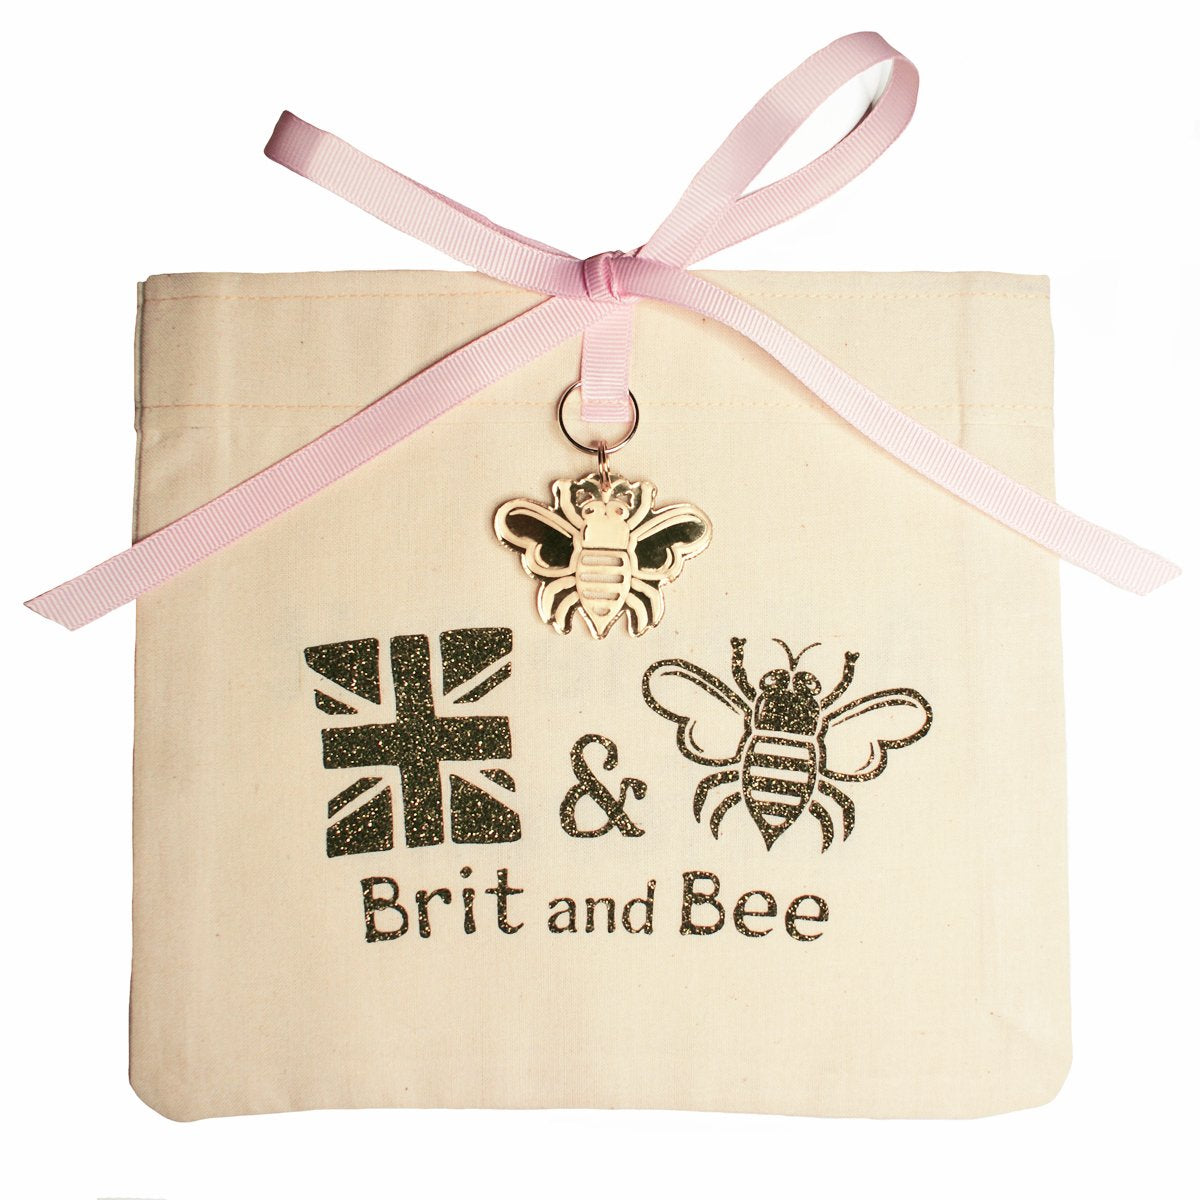 Brit and Bee Sorority State Ornament - Gamma Phi Beta